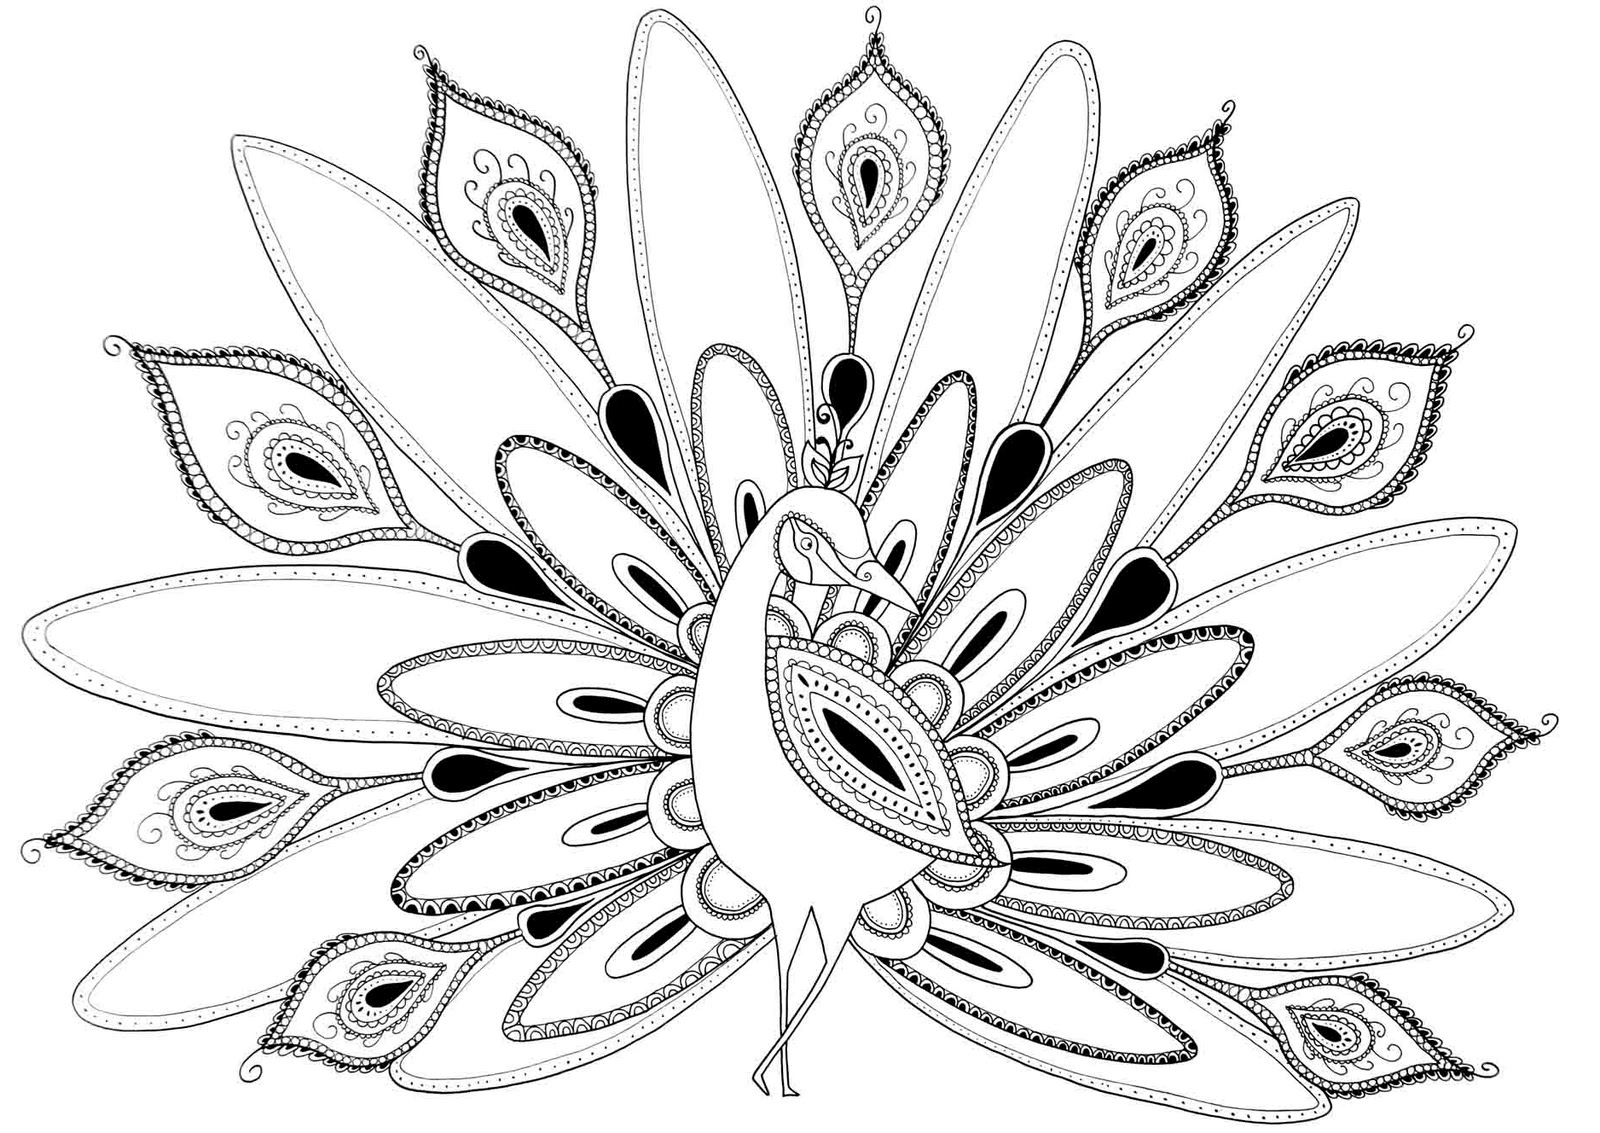 peacok drawing peacock outline drawing at getdrawings free download drawing peacok